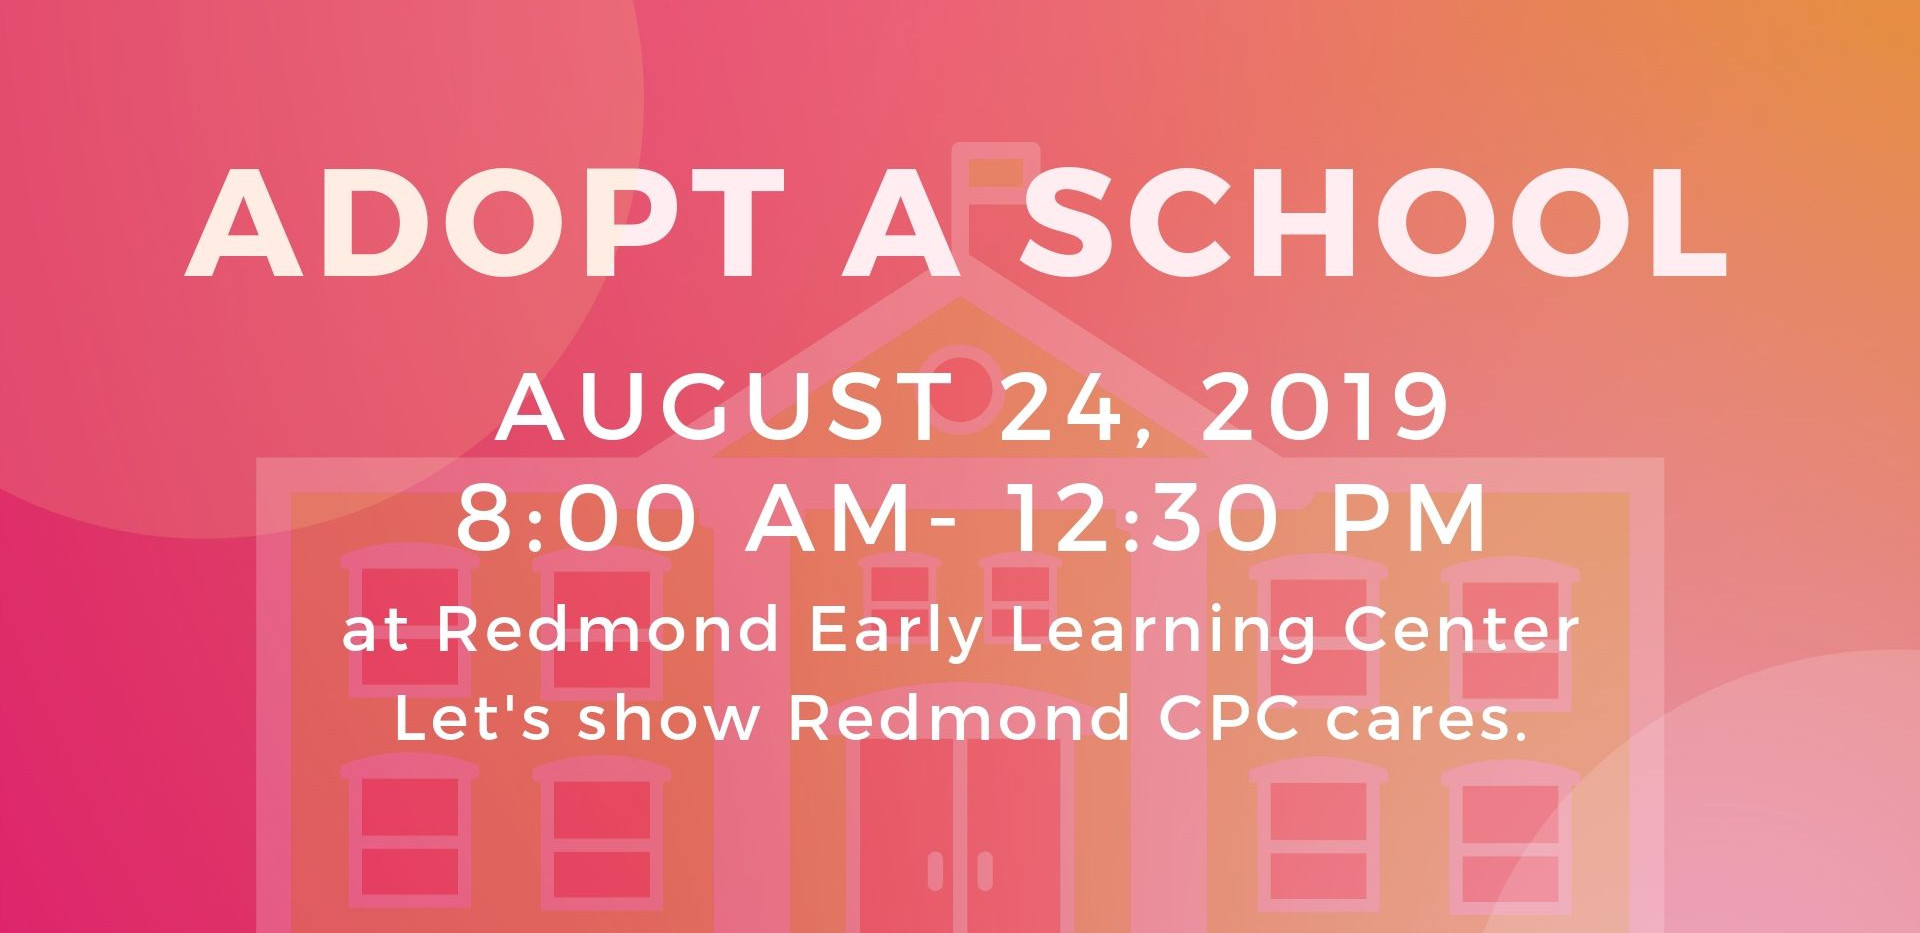 Redmond Early Learning Center service day